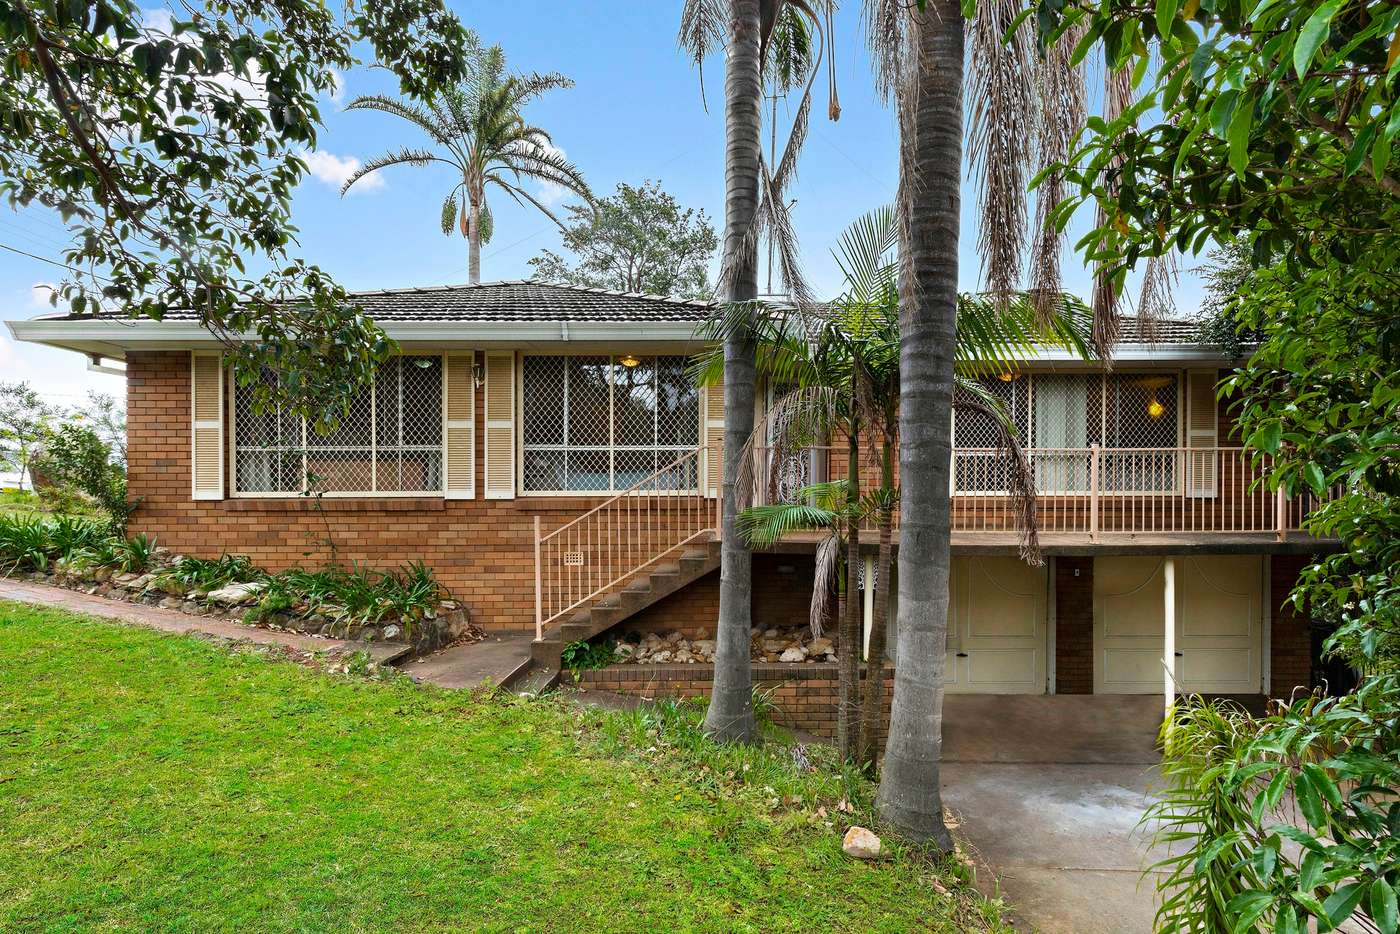 Main view of Homely house listing, 2 McAndrew Crescent, Mangerton NSW 2500